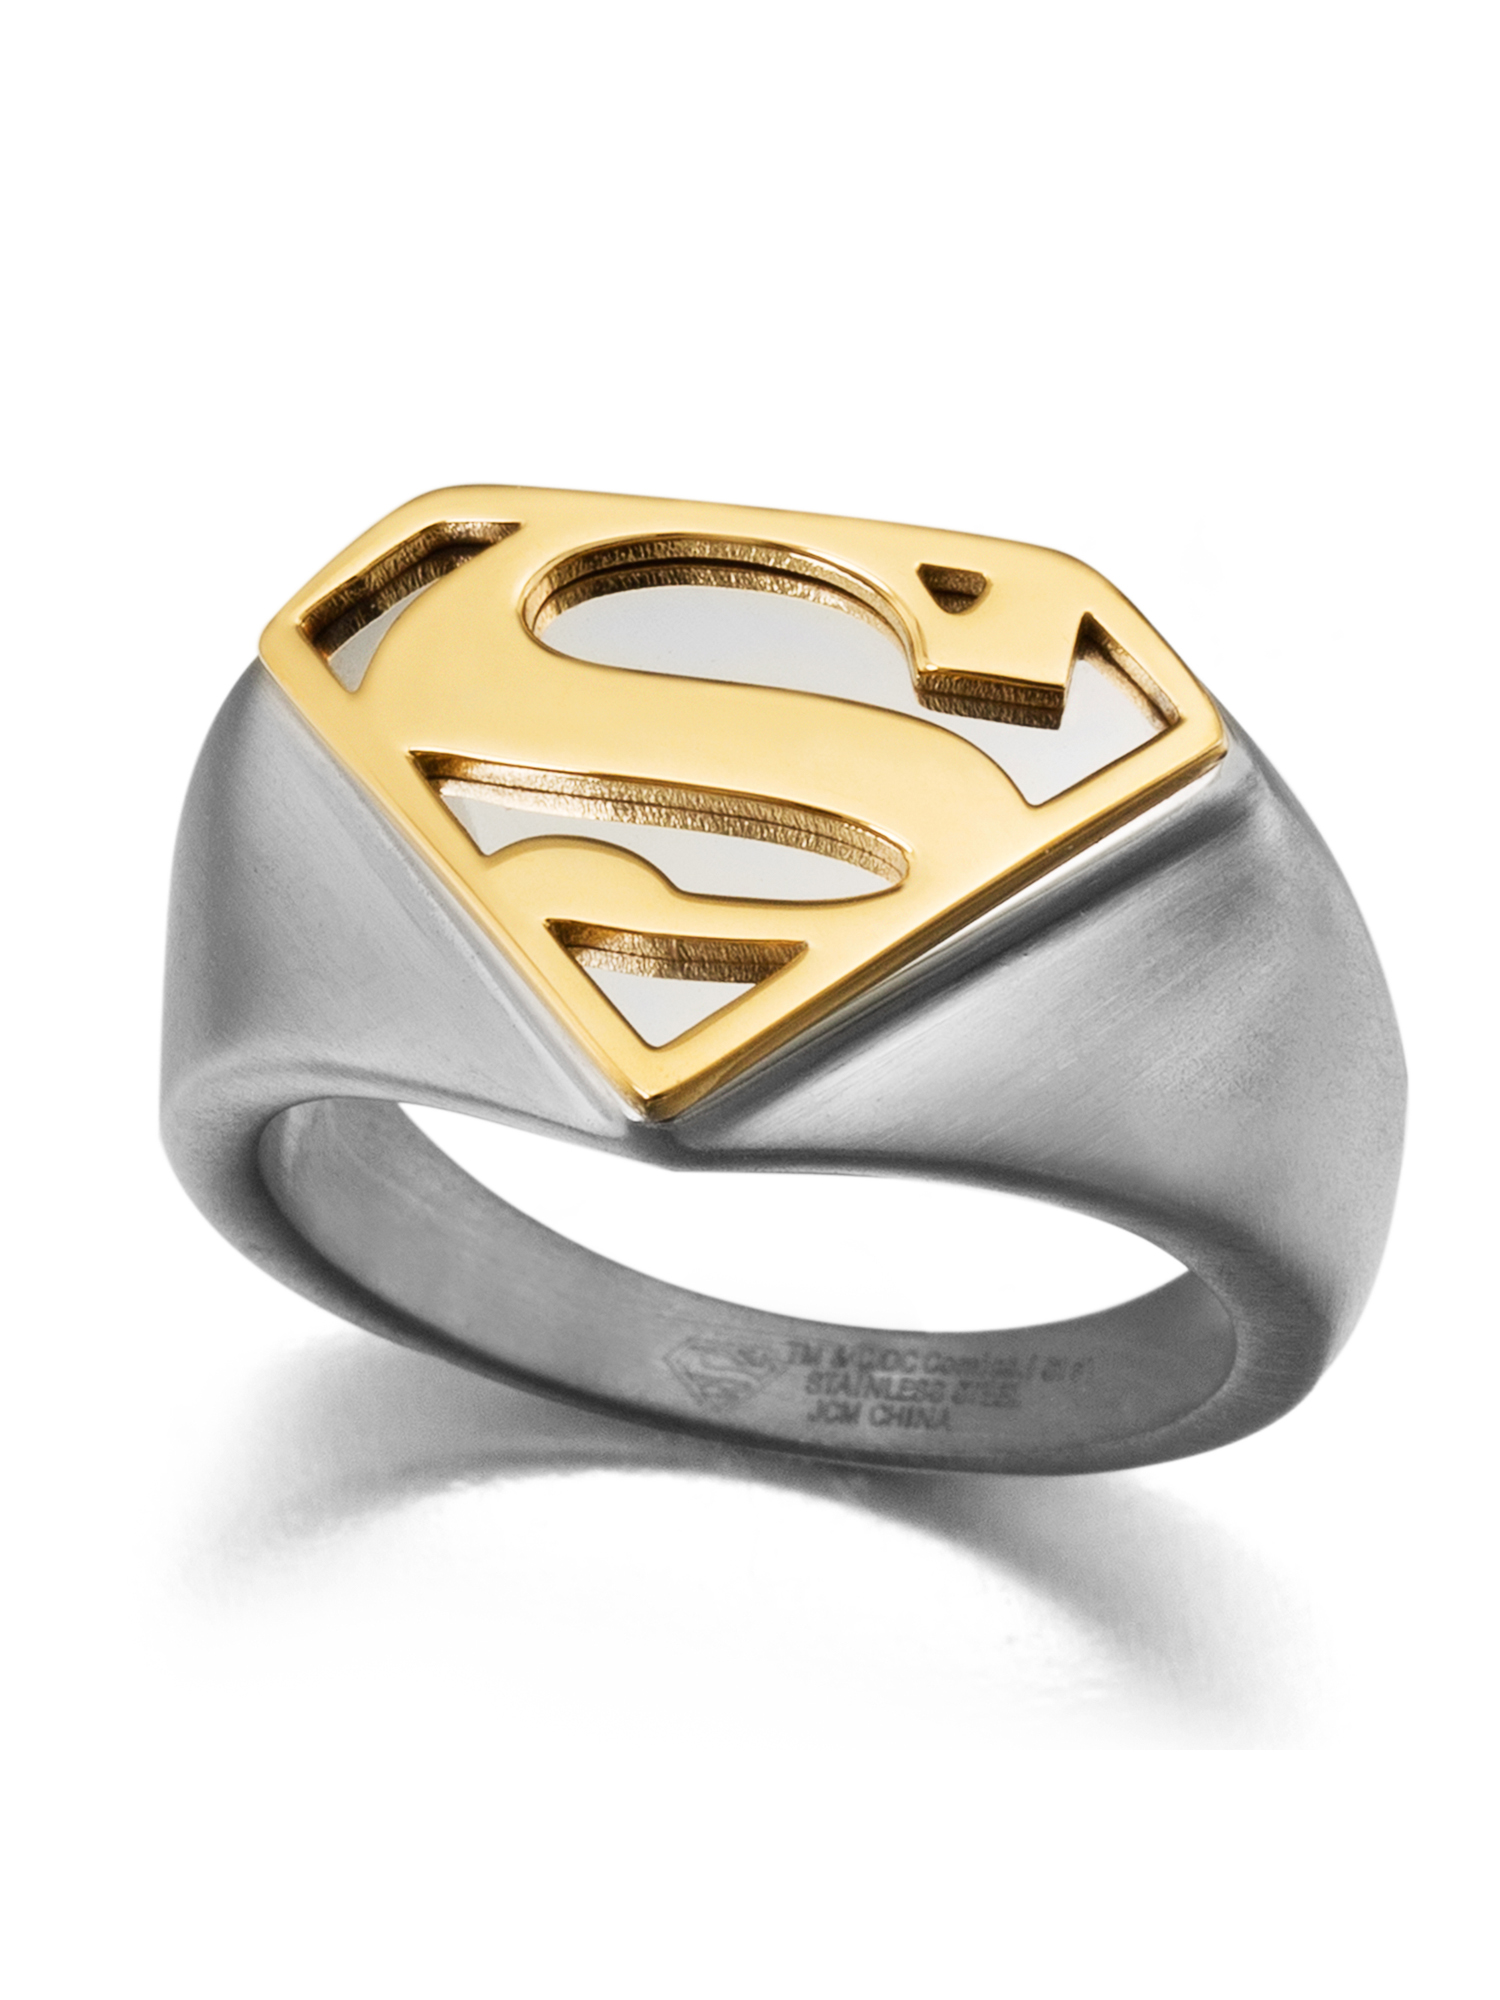 Stainless Steel Two-Toned Superman Ring - Walmart.com